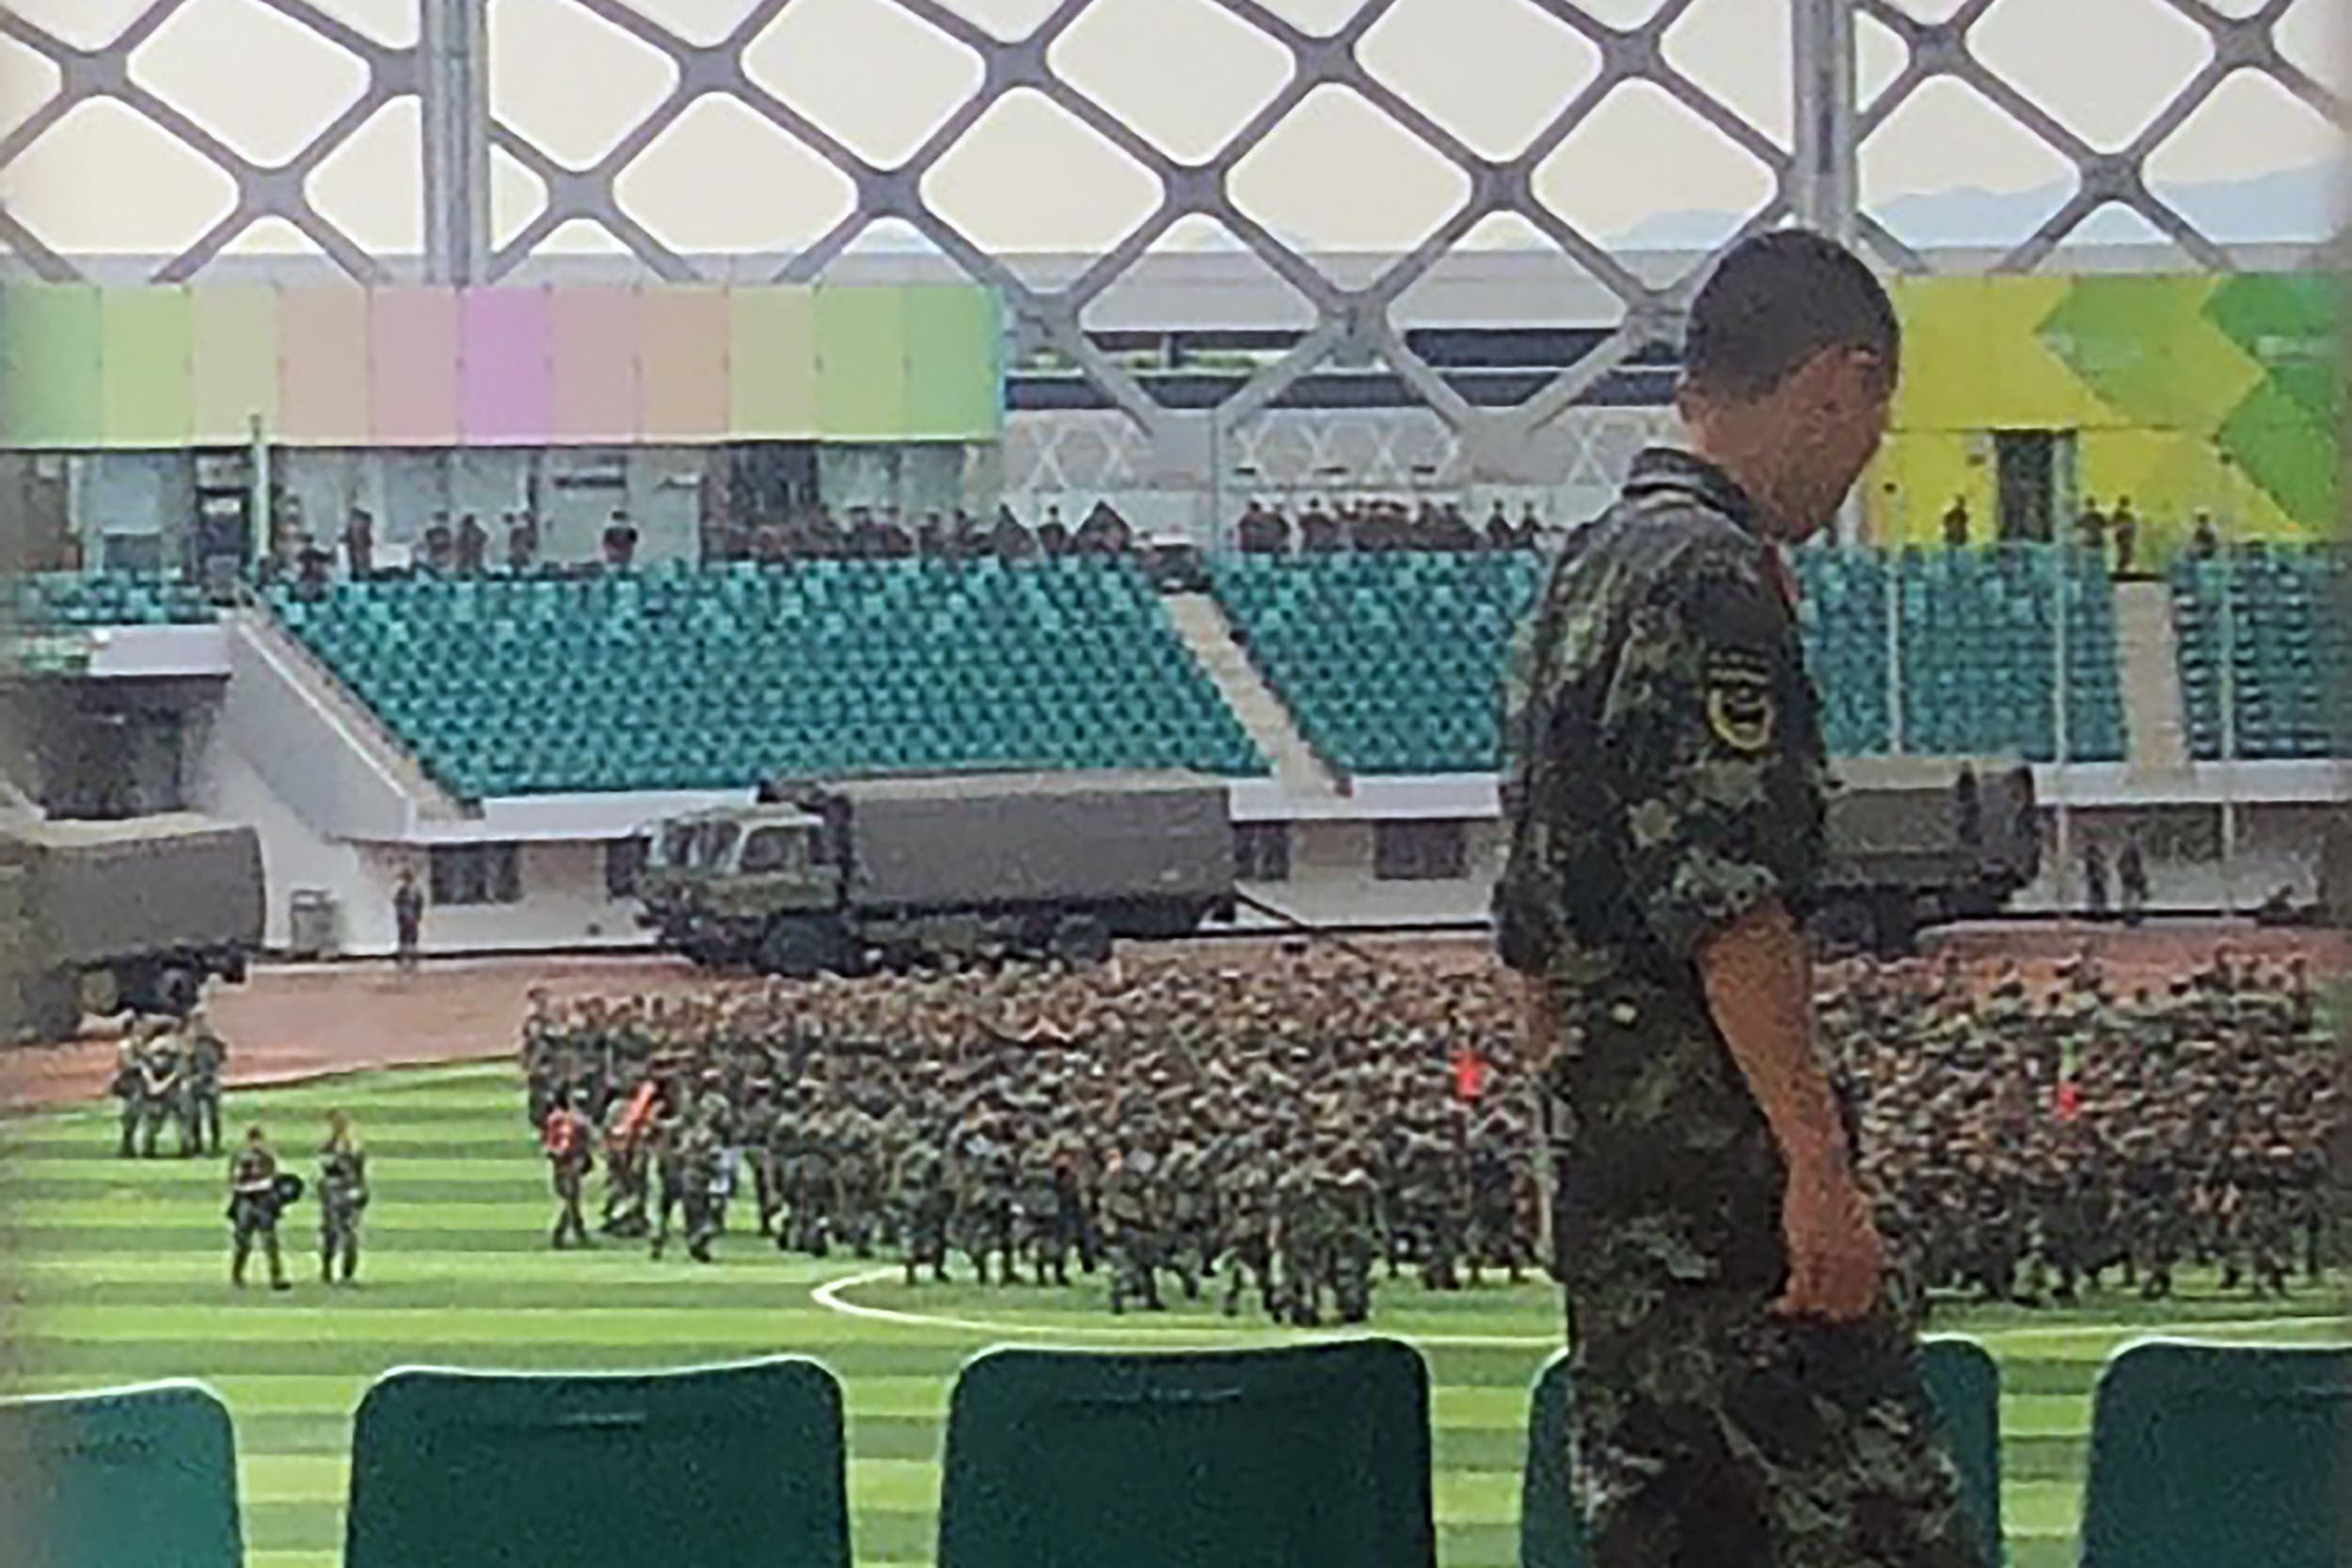 Chinese military personnel gather at the Shenzhen Bay stadium in Shenzhen, bordering Hong Kong in China's southern Guangdong province, on August 15, 2019. (AFP)